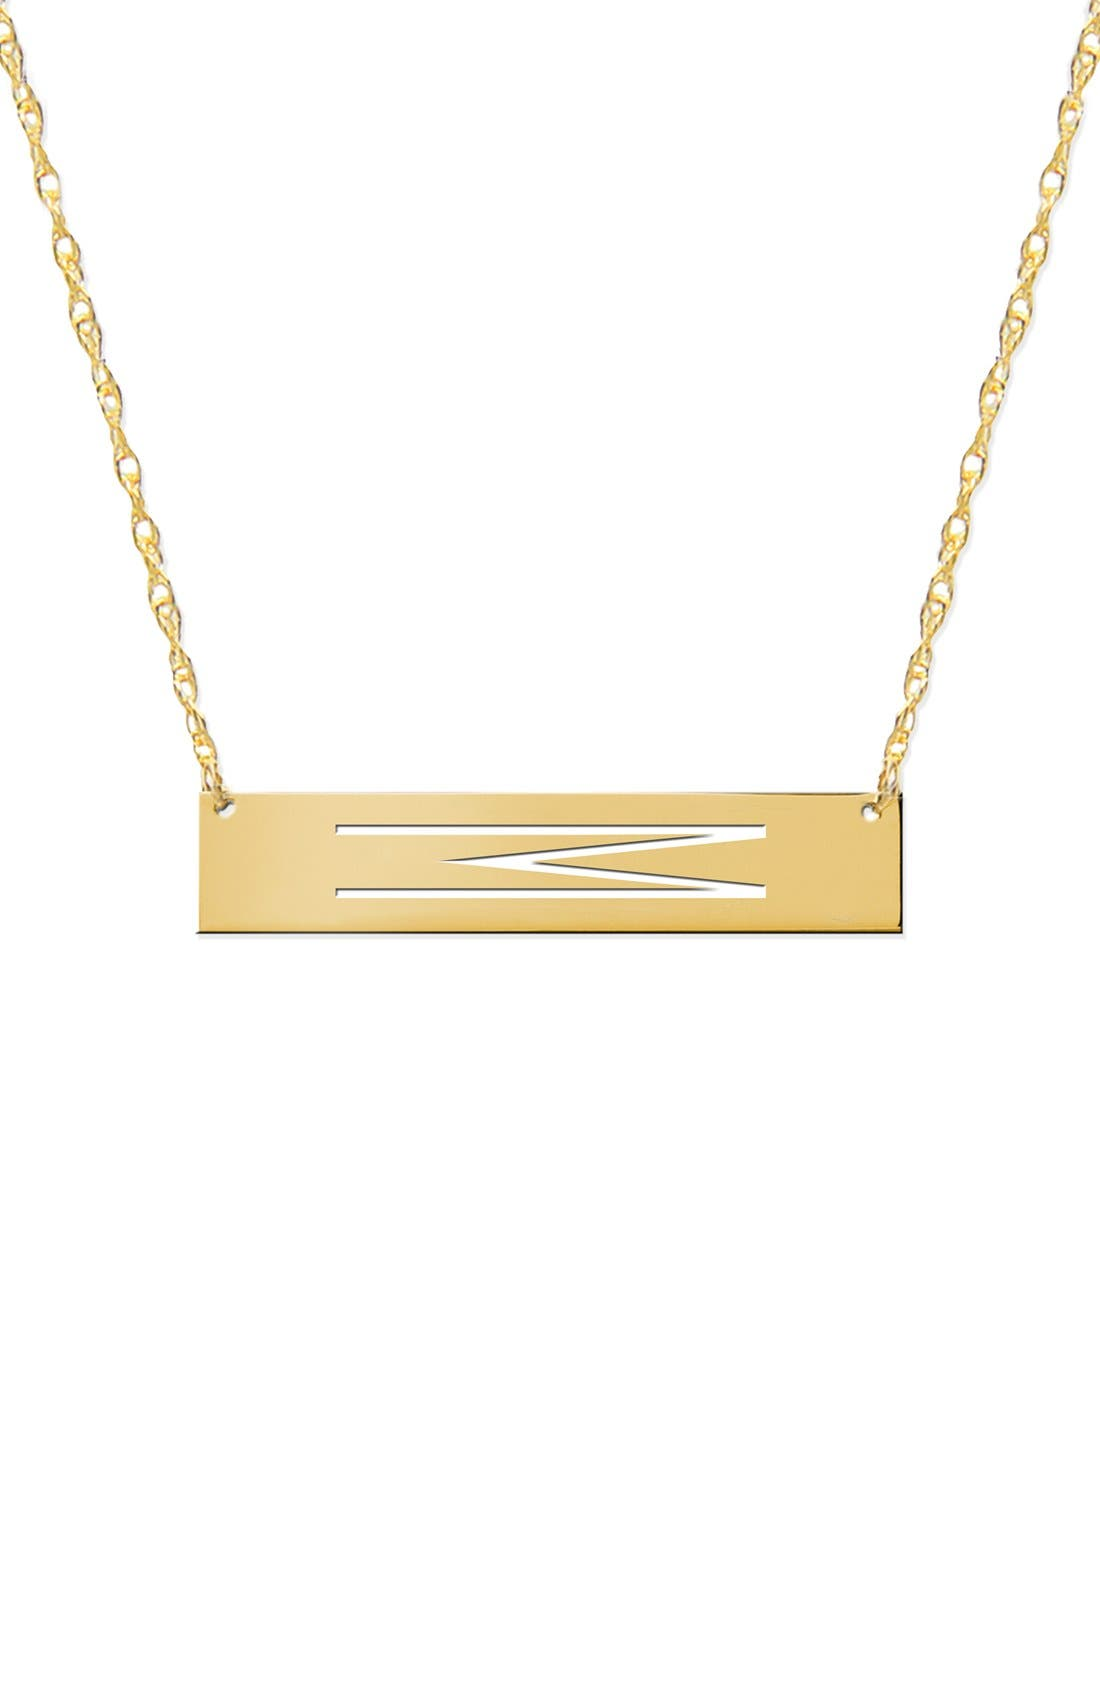 Personalized Bar Pendant Necklace,                         Main,                         color, GOLD